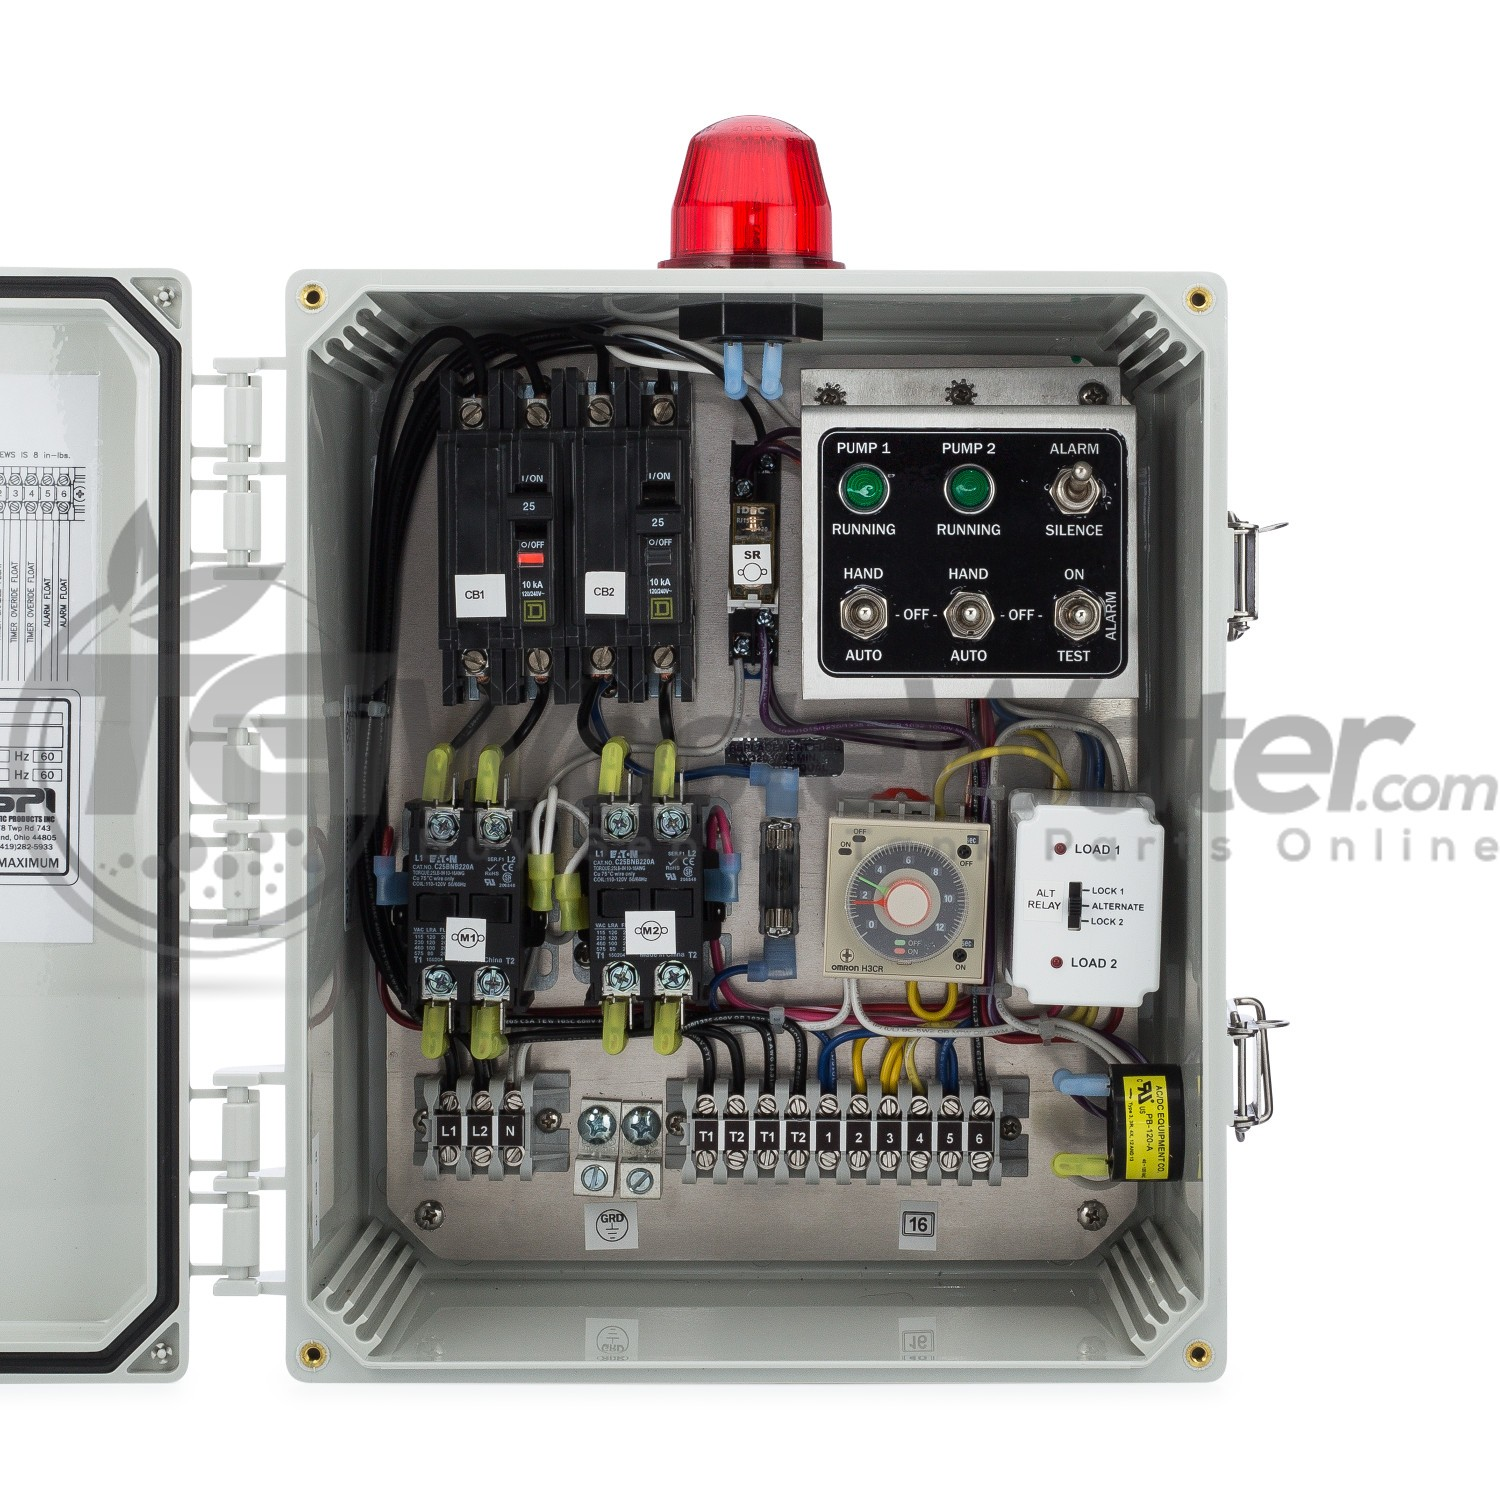 hight resolution of spi duplex time dosing control panel 120 230v 50a810 sstdd128 tg wastewater